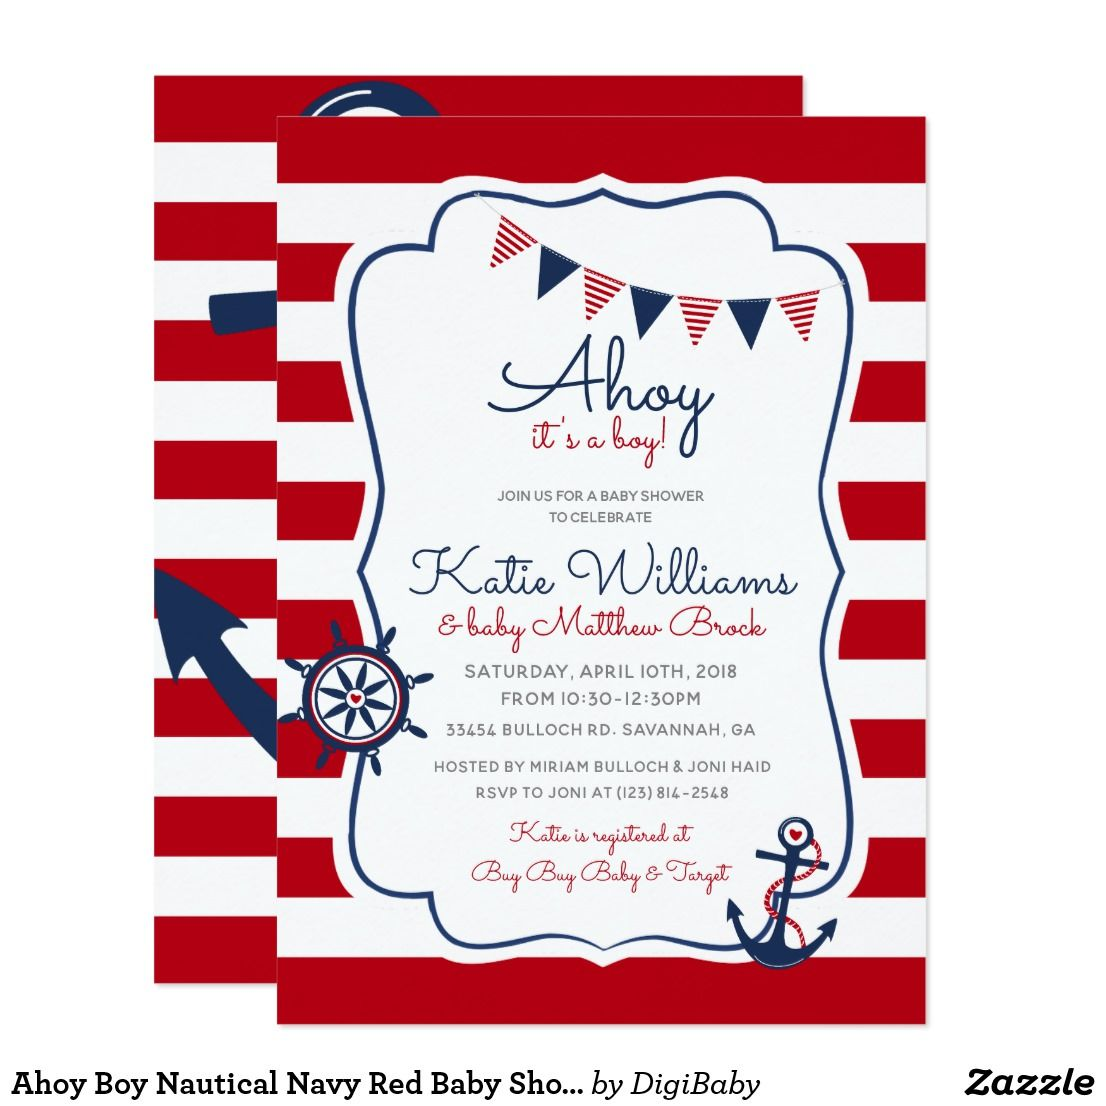 Ahoy Boy Nautical Navy Red Baby Shower Invitation. Customize your ...